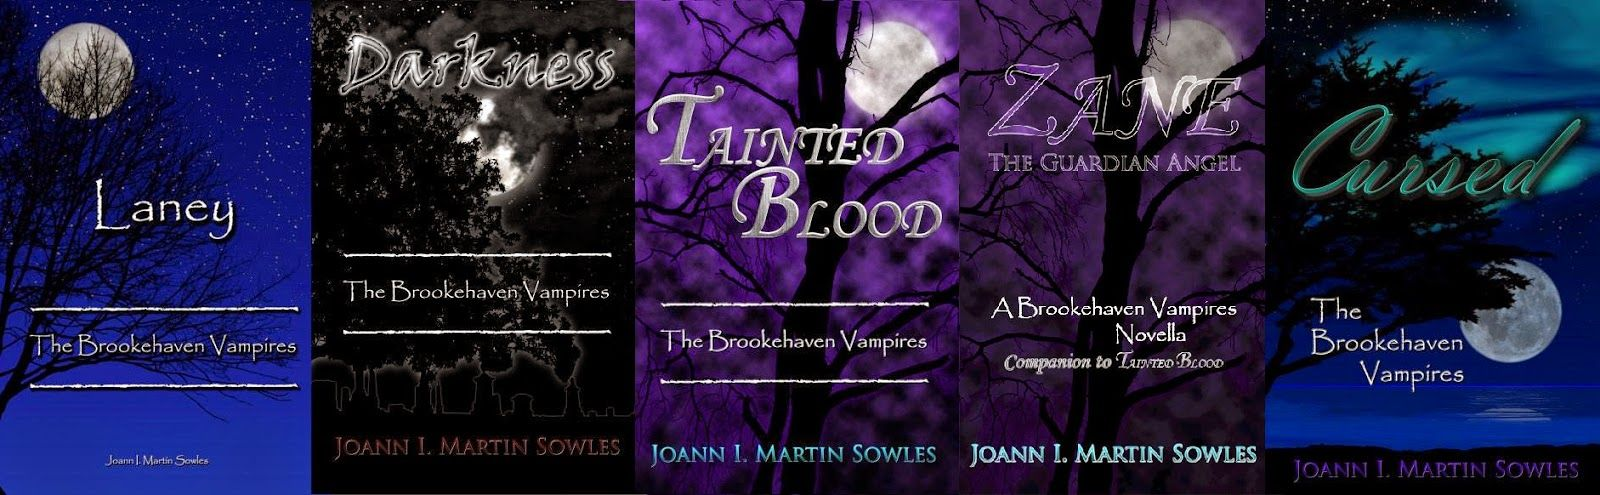 Book Purses and Reviews: The Brookehaven Vampires by Joann I. Martin Sowles